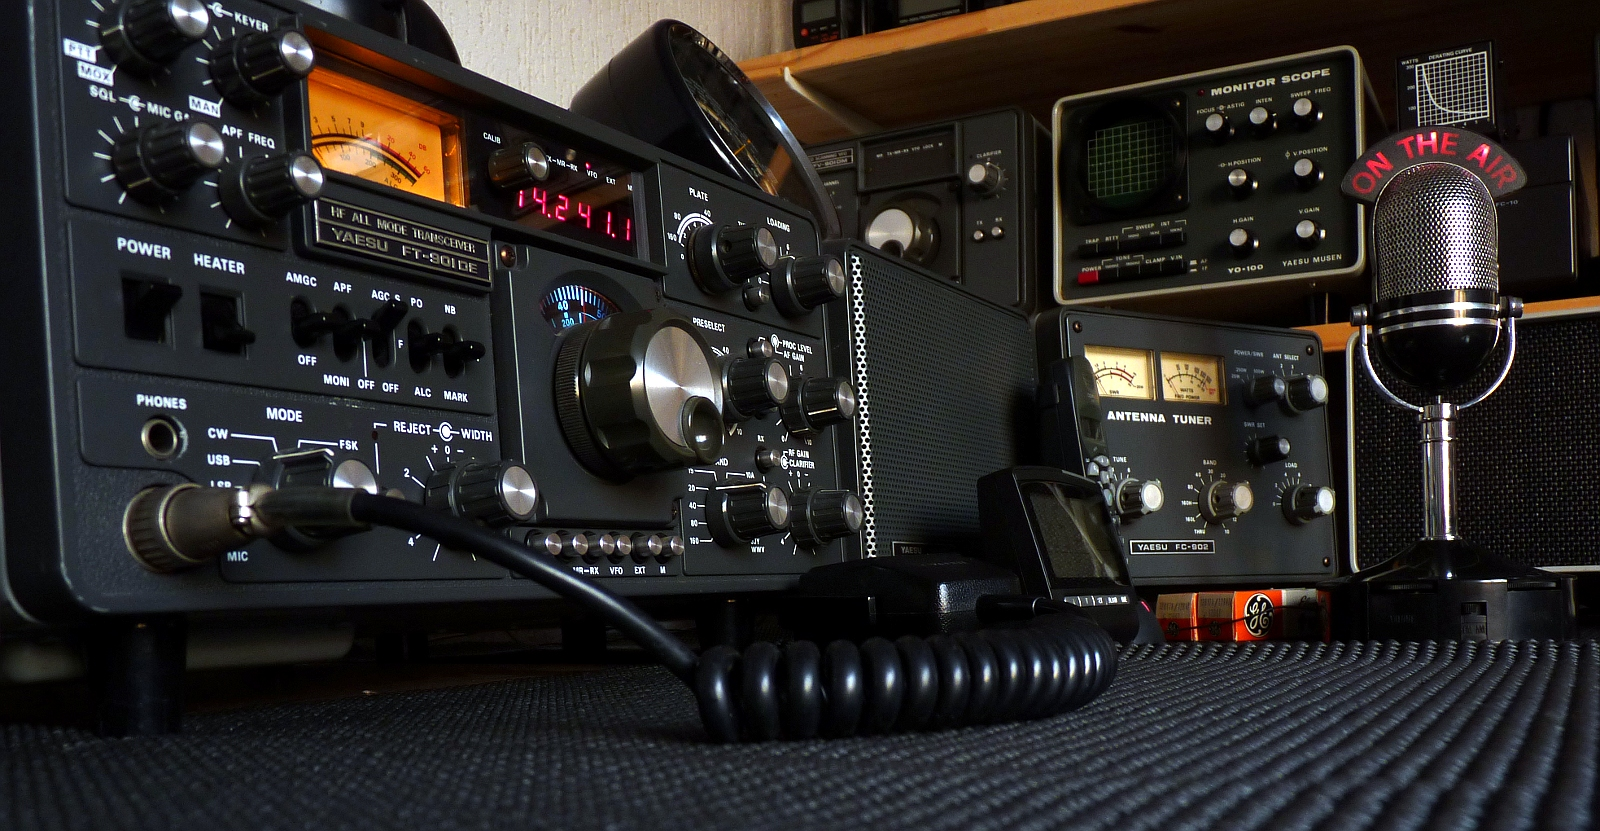 Radio Communication Methods During Emergencies- Part 5, by R. in NC